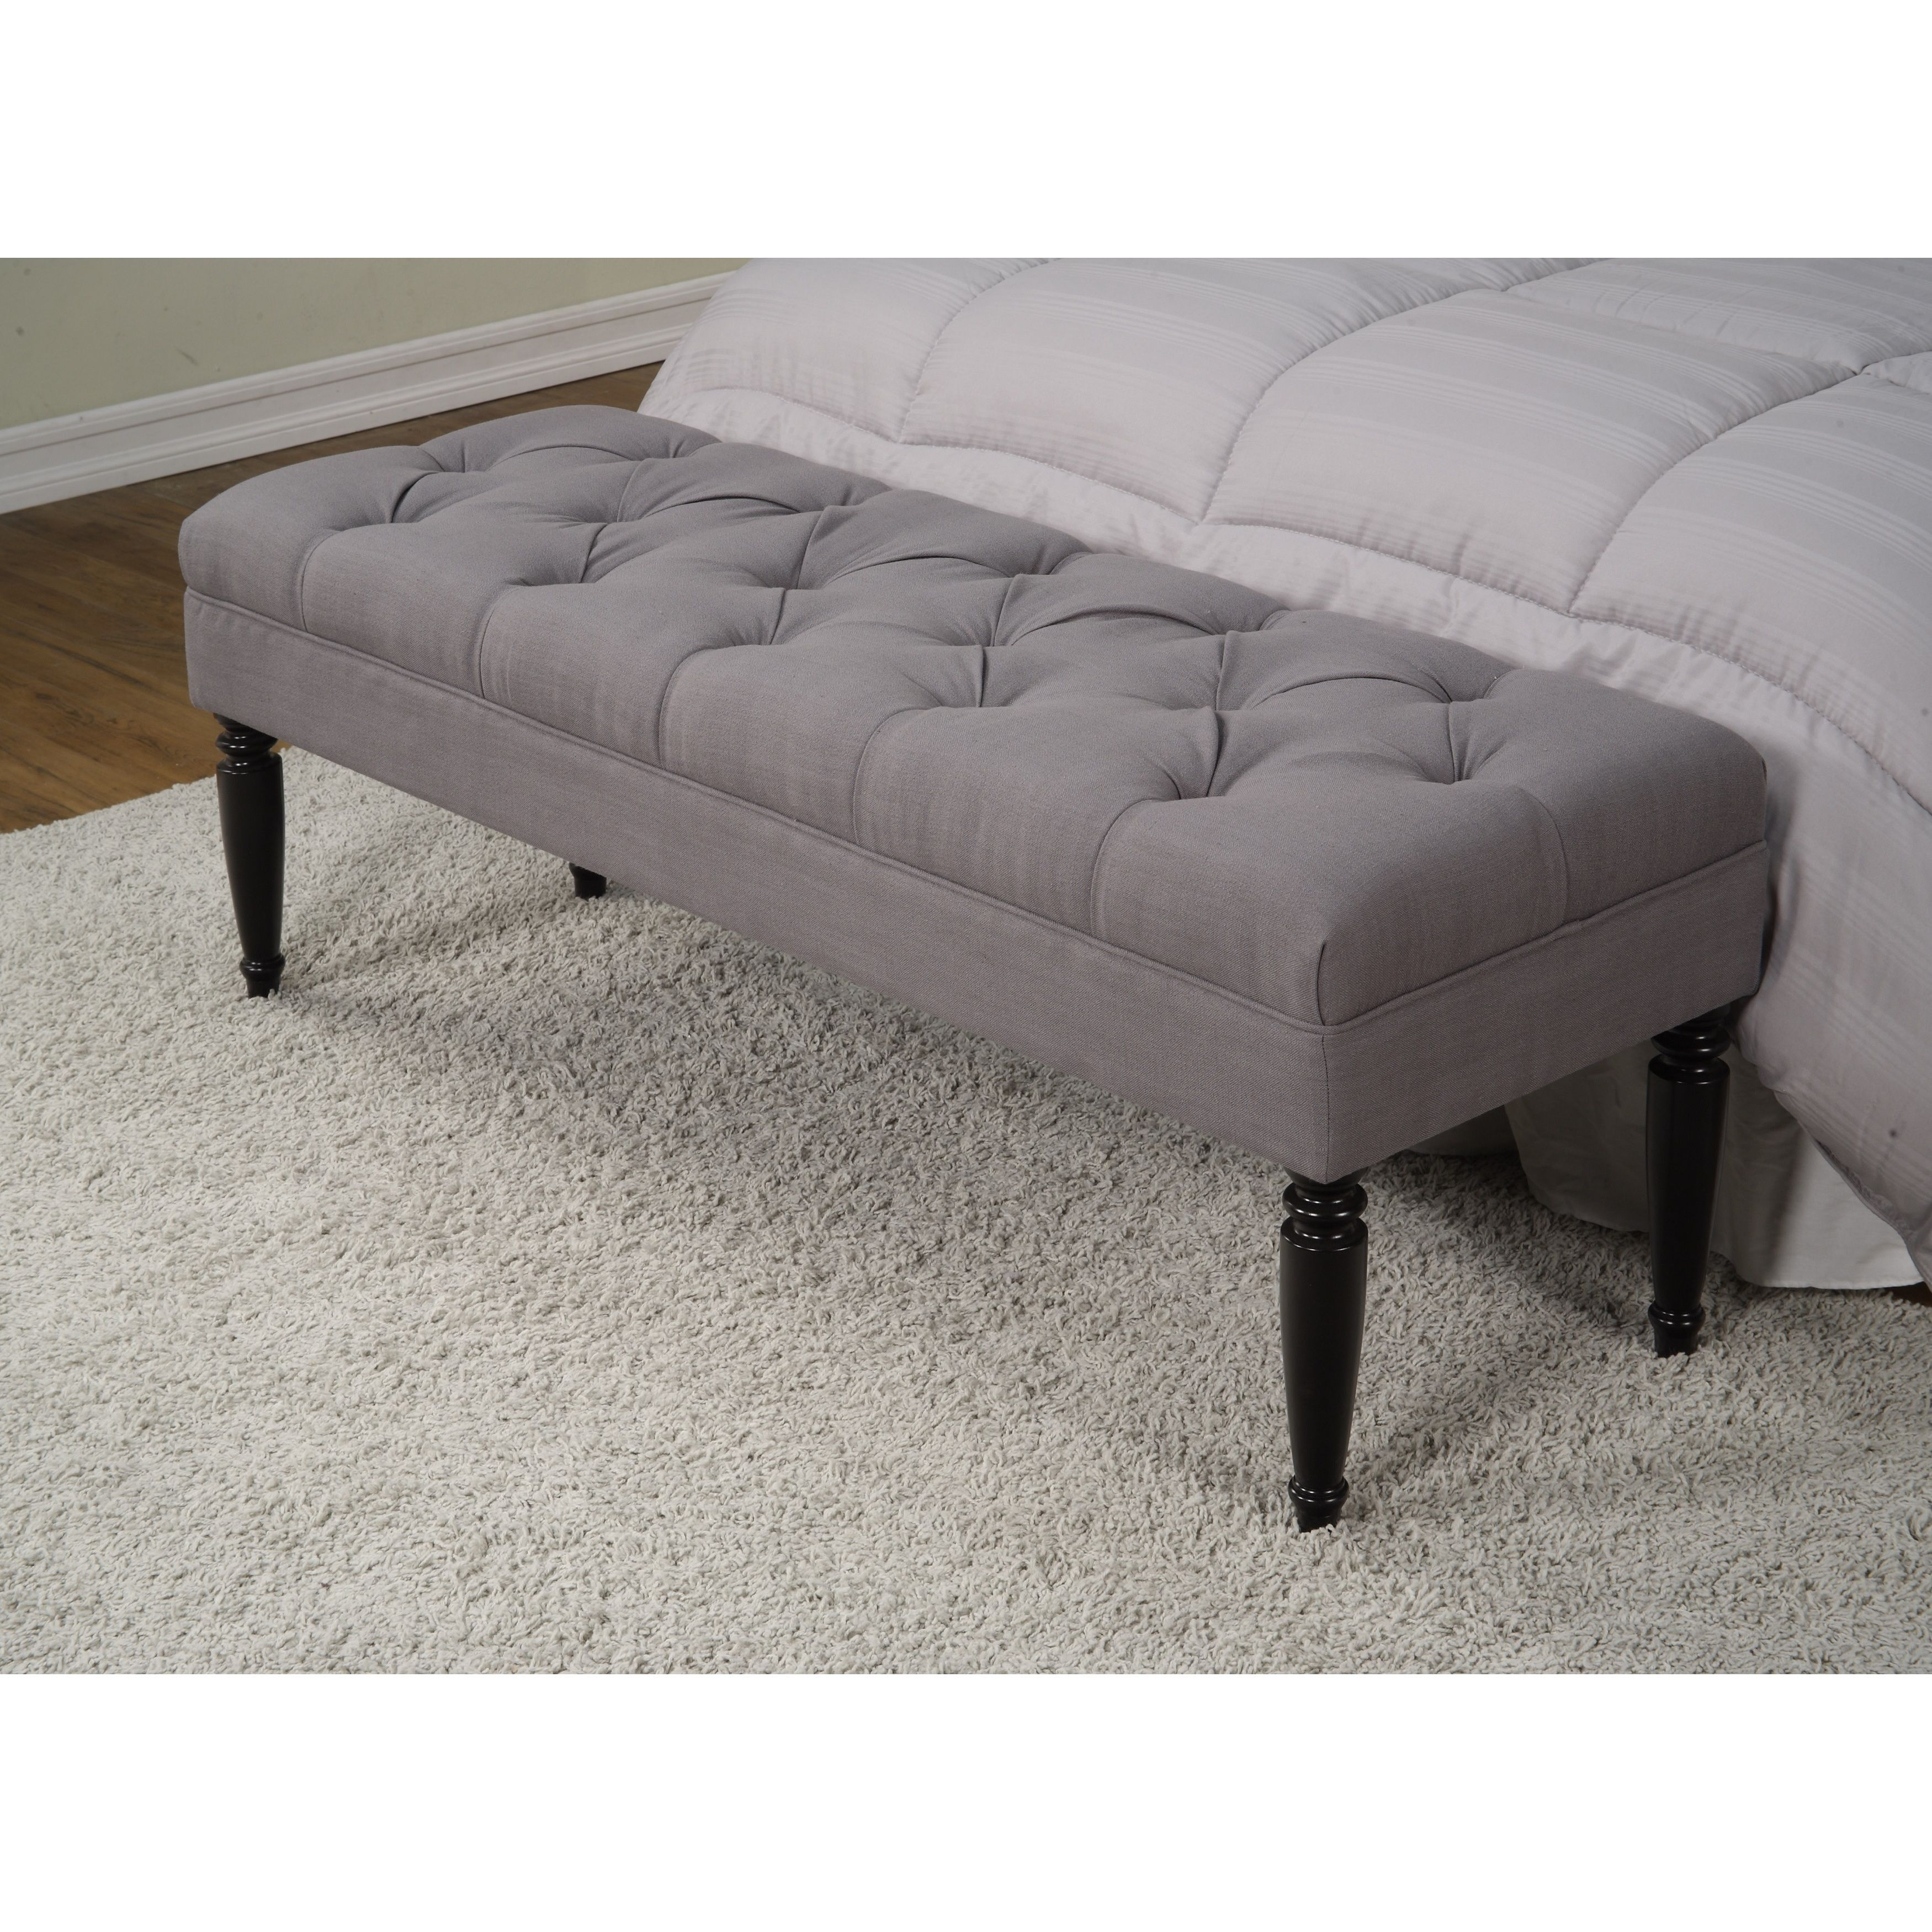 tufted bench upholstered gray banquette white tone classy with of dining back